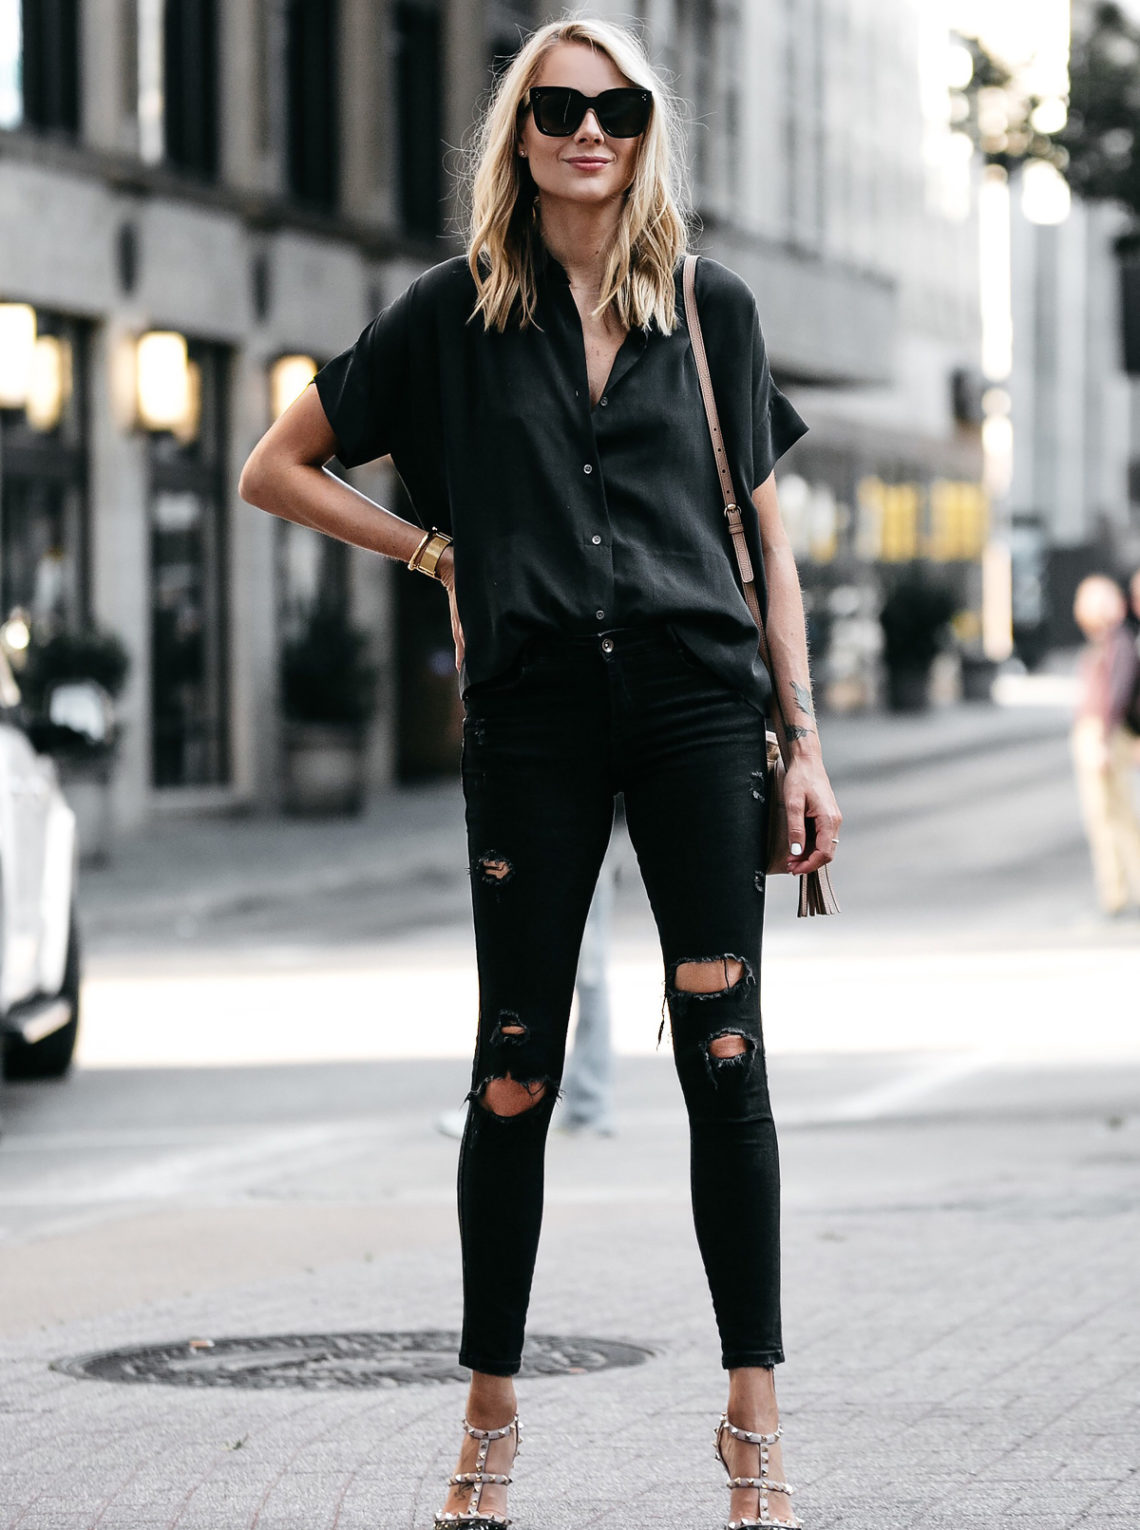 5c06ddc4189 Blonde Woman Wearing Everlane Black Short Sleeve Button Up Shirt Zara Black  Ripped Skinny Jeans Outfit